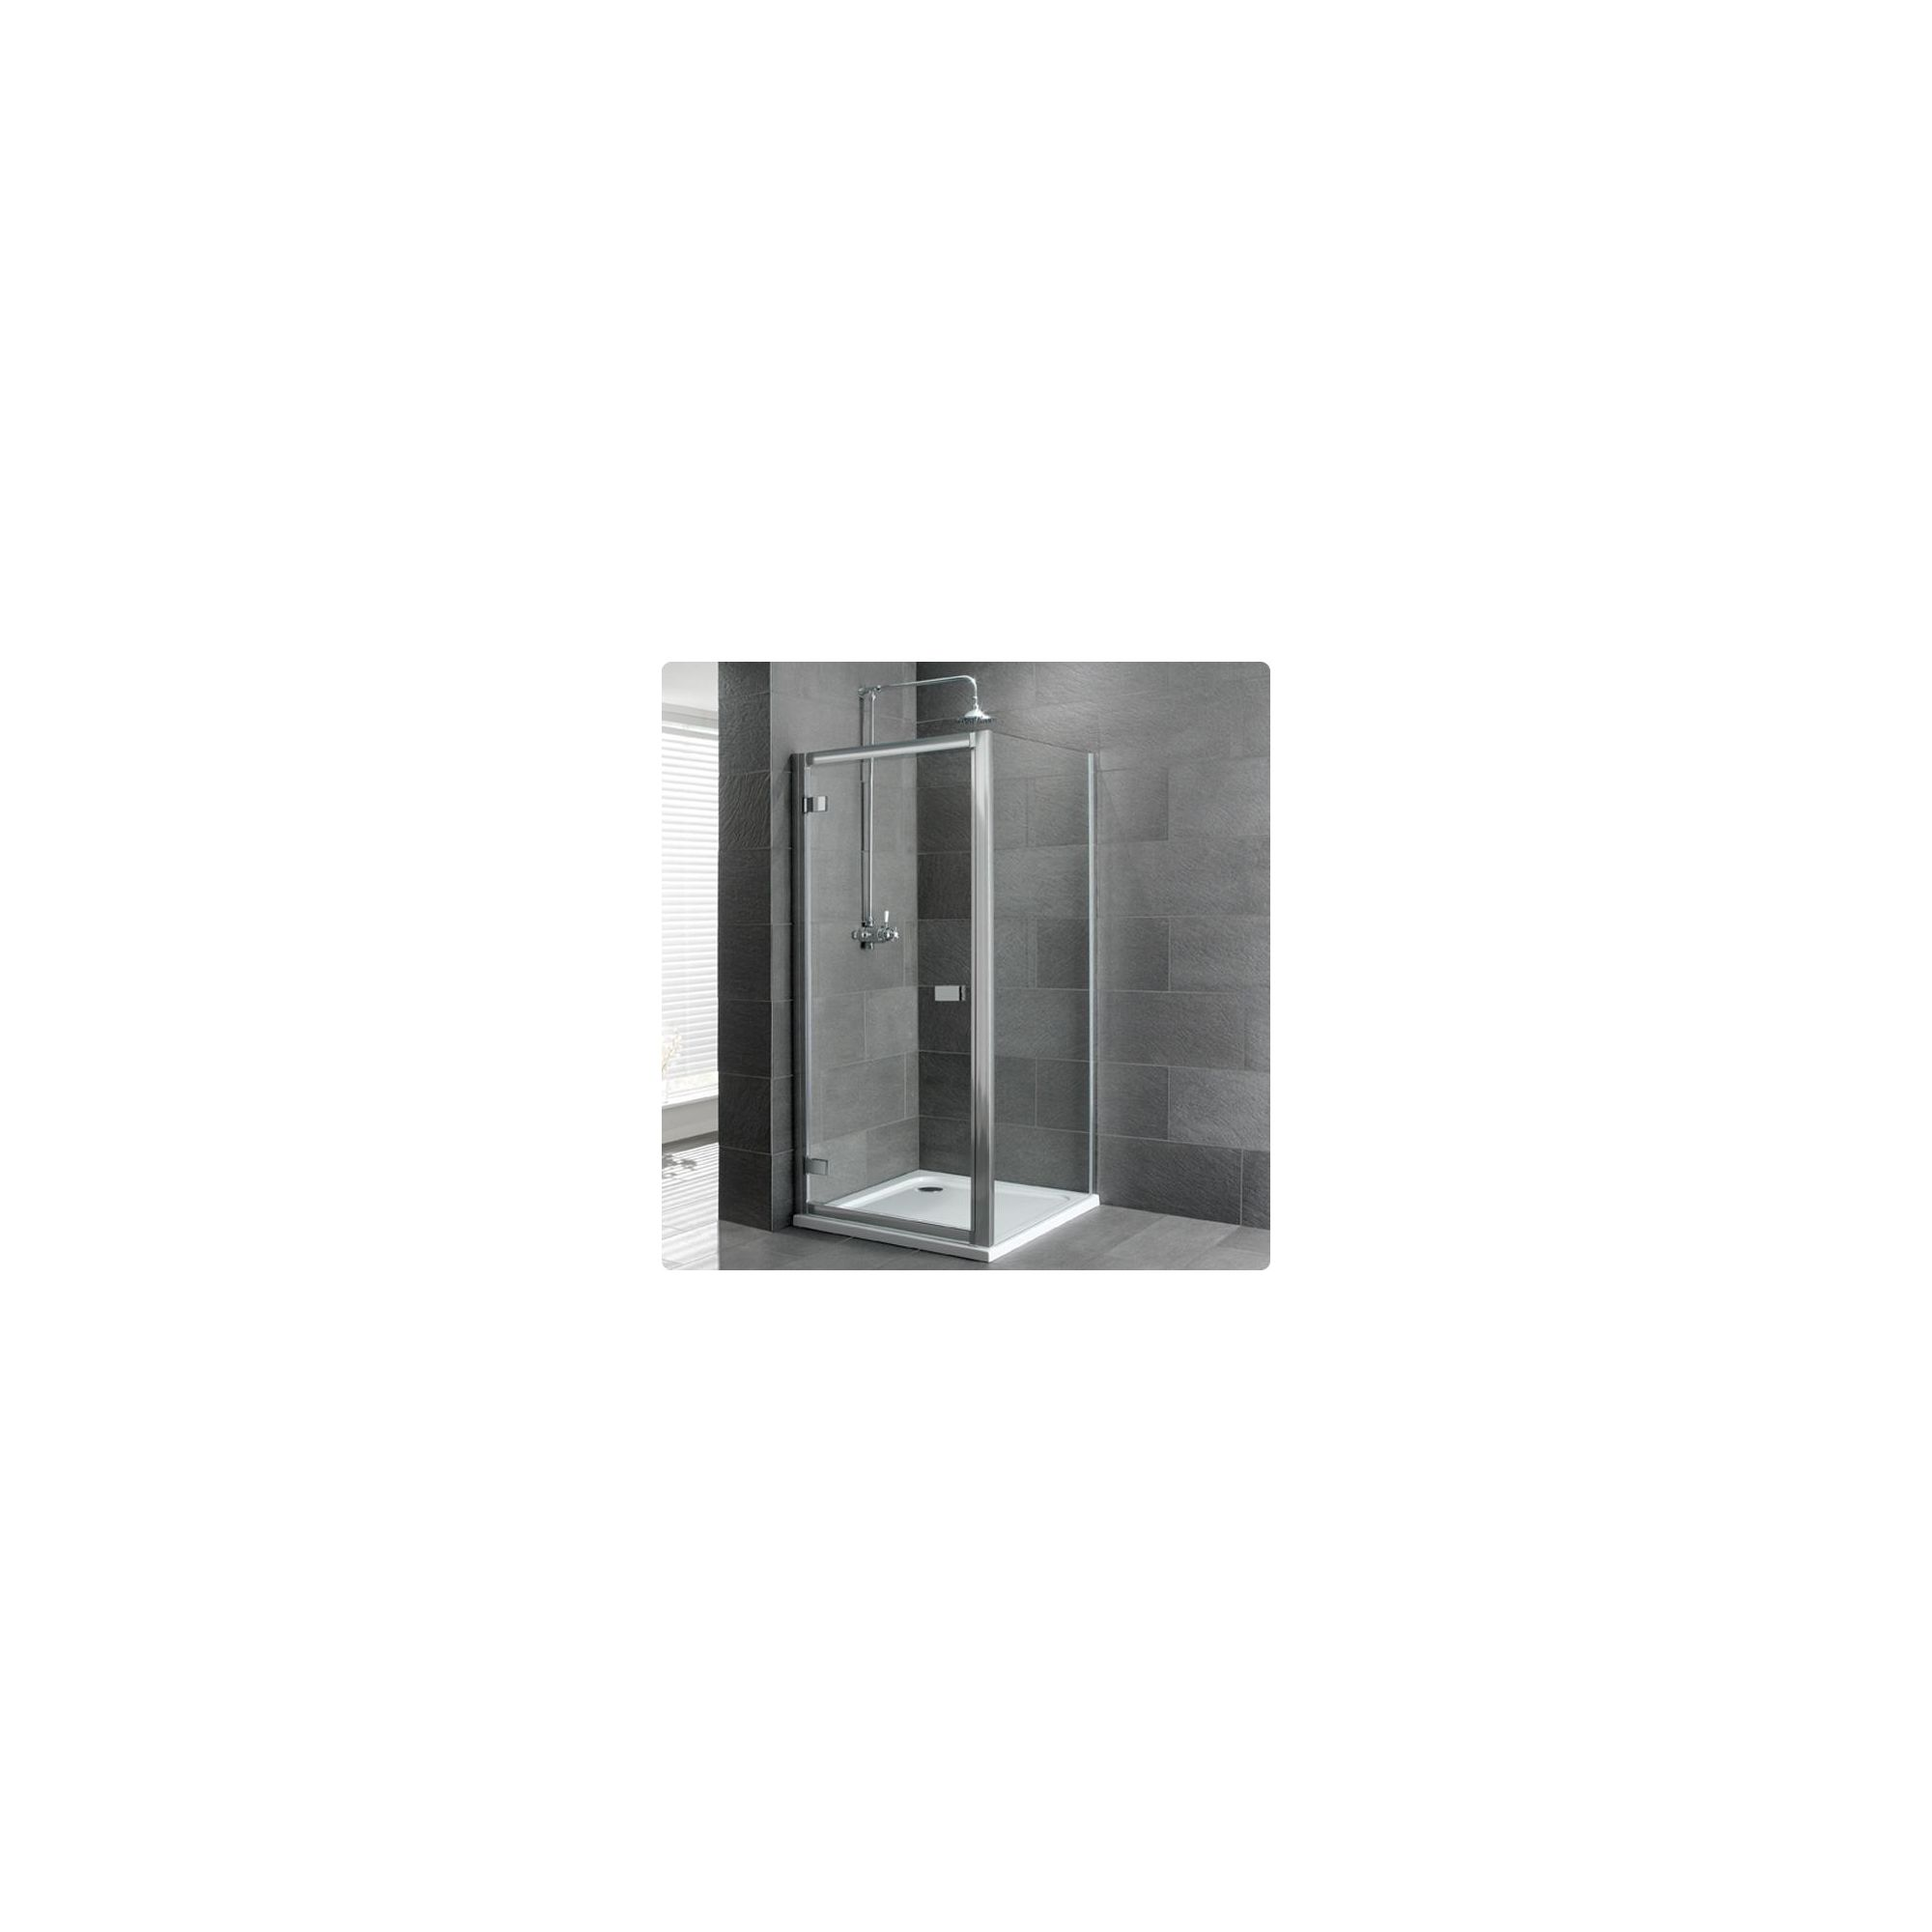 Duchy Select Silver Hinged Door Shower Enclosure, 1000mm x 700mm, Standard Tray, 6mm Glass at Tesco Direct